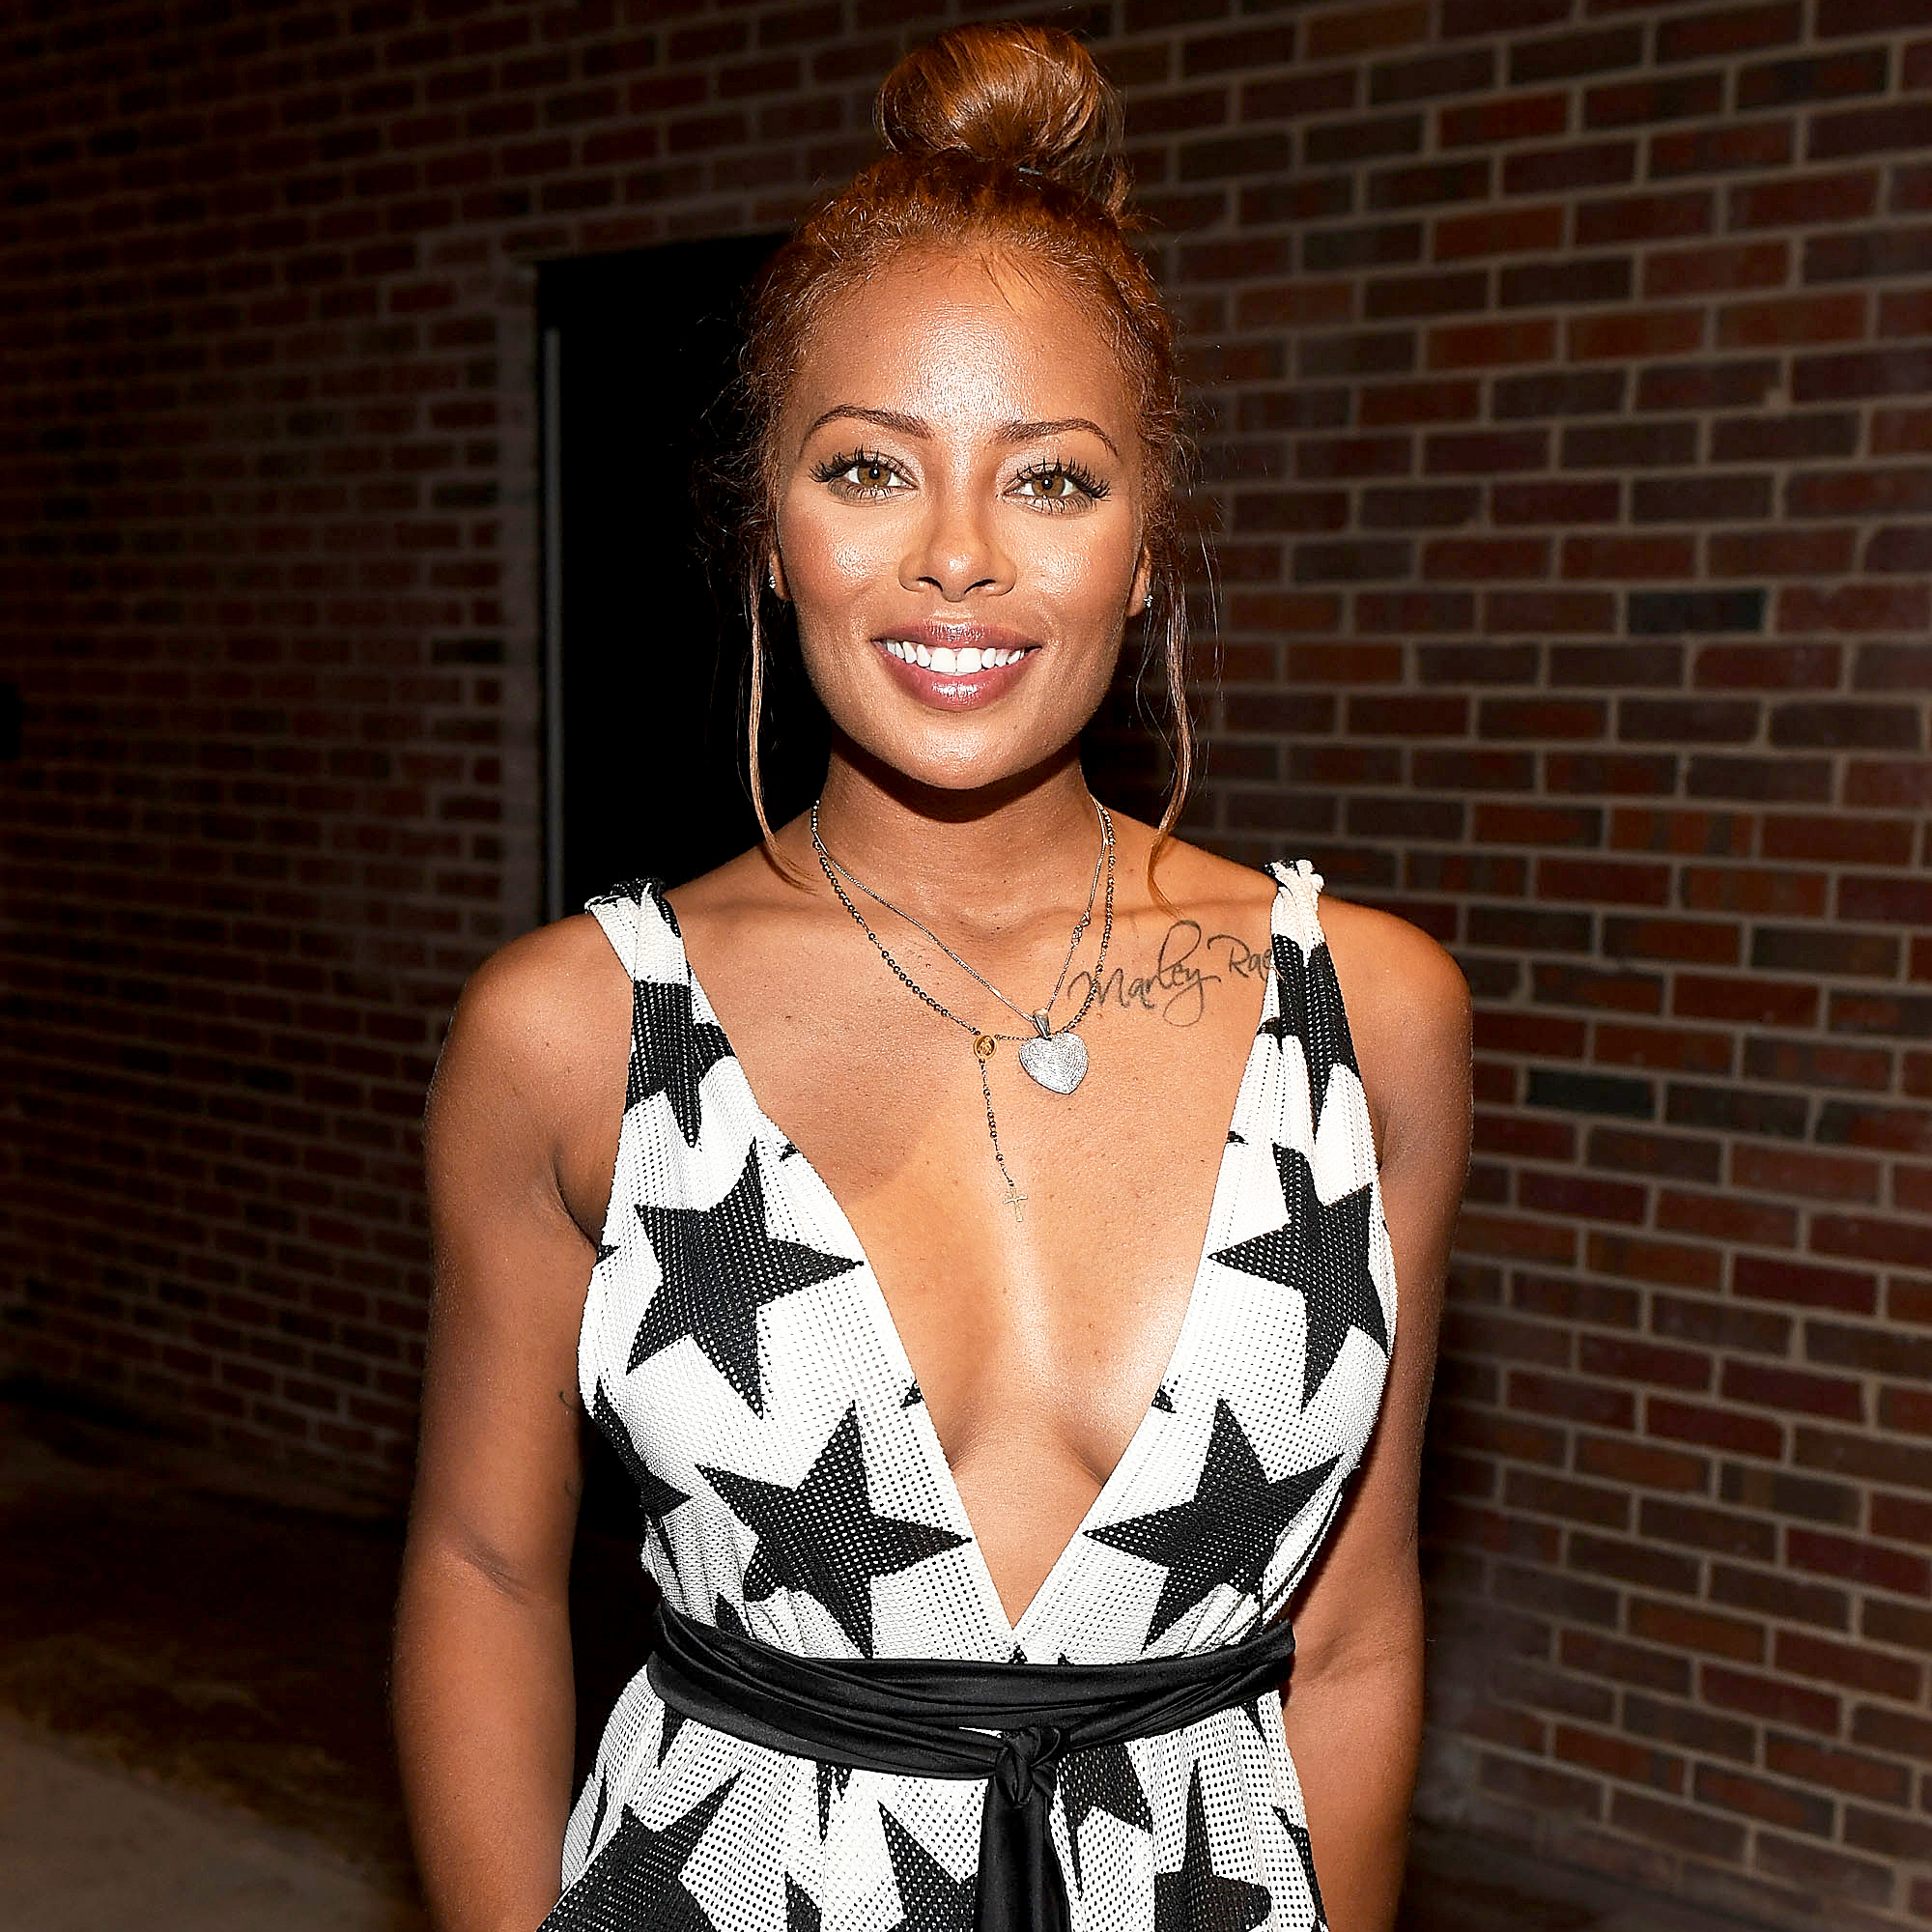 Pictures Eva Marcille nudes (95 foto and video), Topless, Fappening, Feet, cleavage 2015